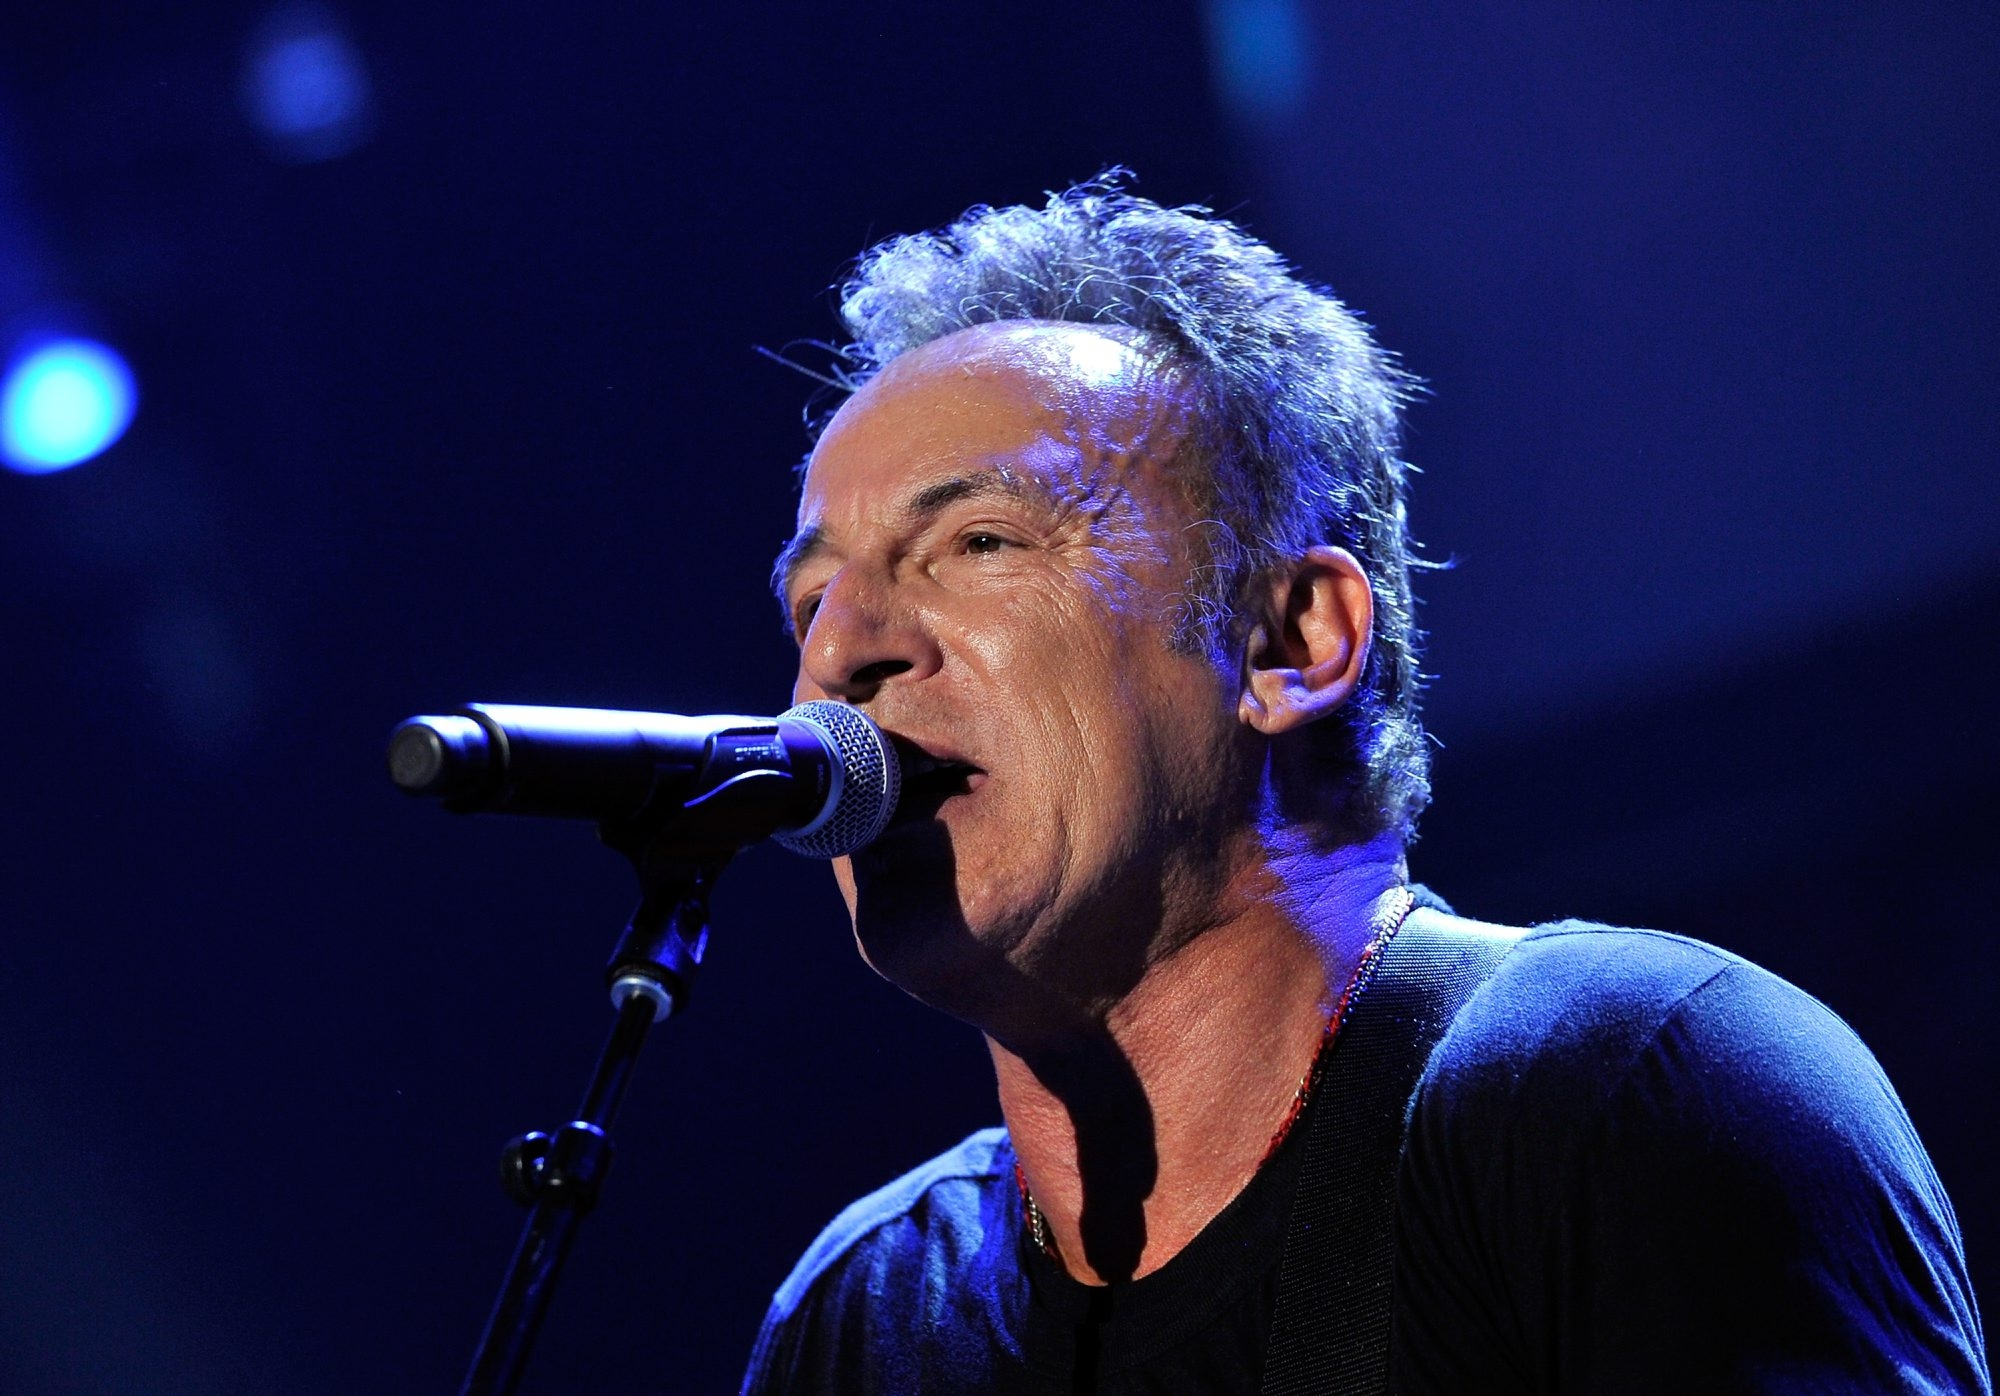 LOS ANGELES, CA - FEBRUARY 08:  Musician Bruce Springsteen performs onstage at MusiCares Person Of The Year Honoring Bruce Springsteen on February 8, 2013 in Los Angeles, California.  (Photo by Larry Busacca/Getty Images for NARAS)